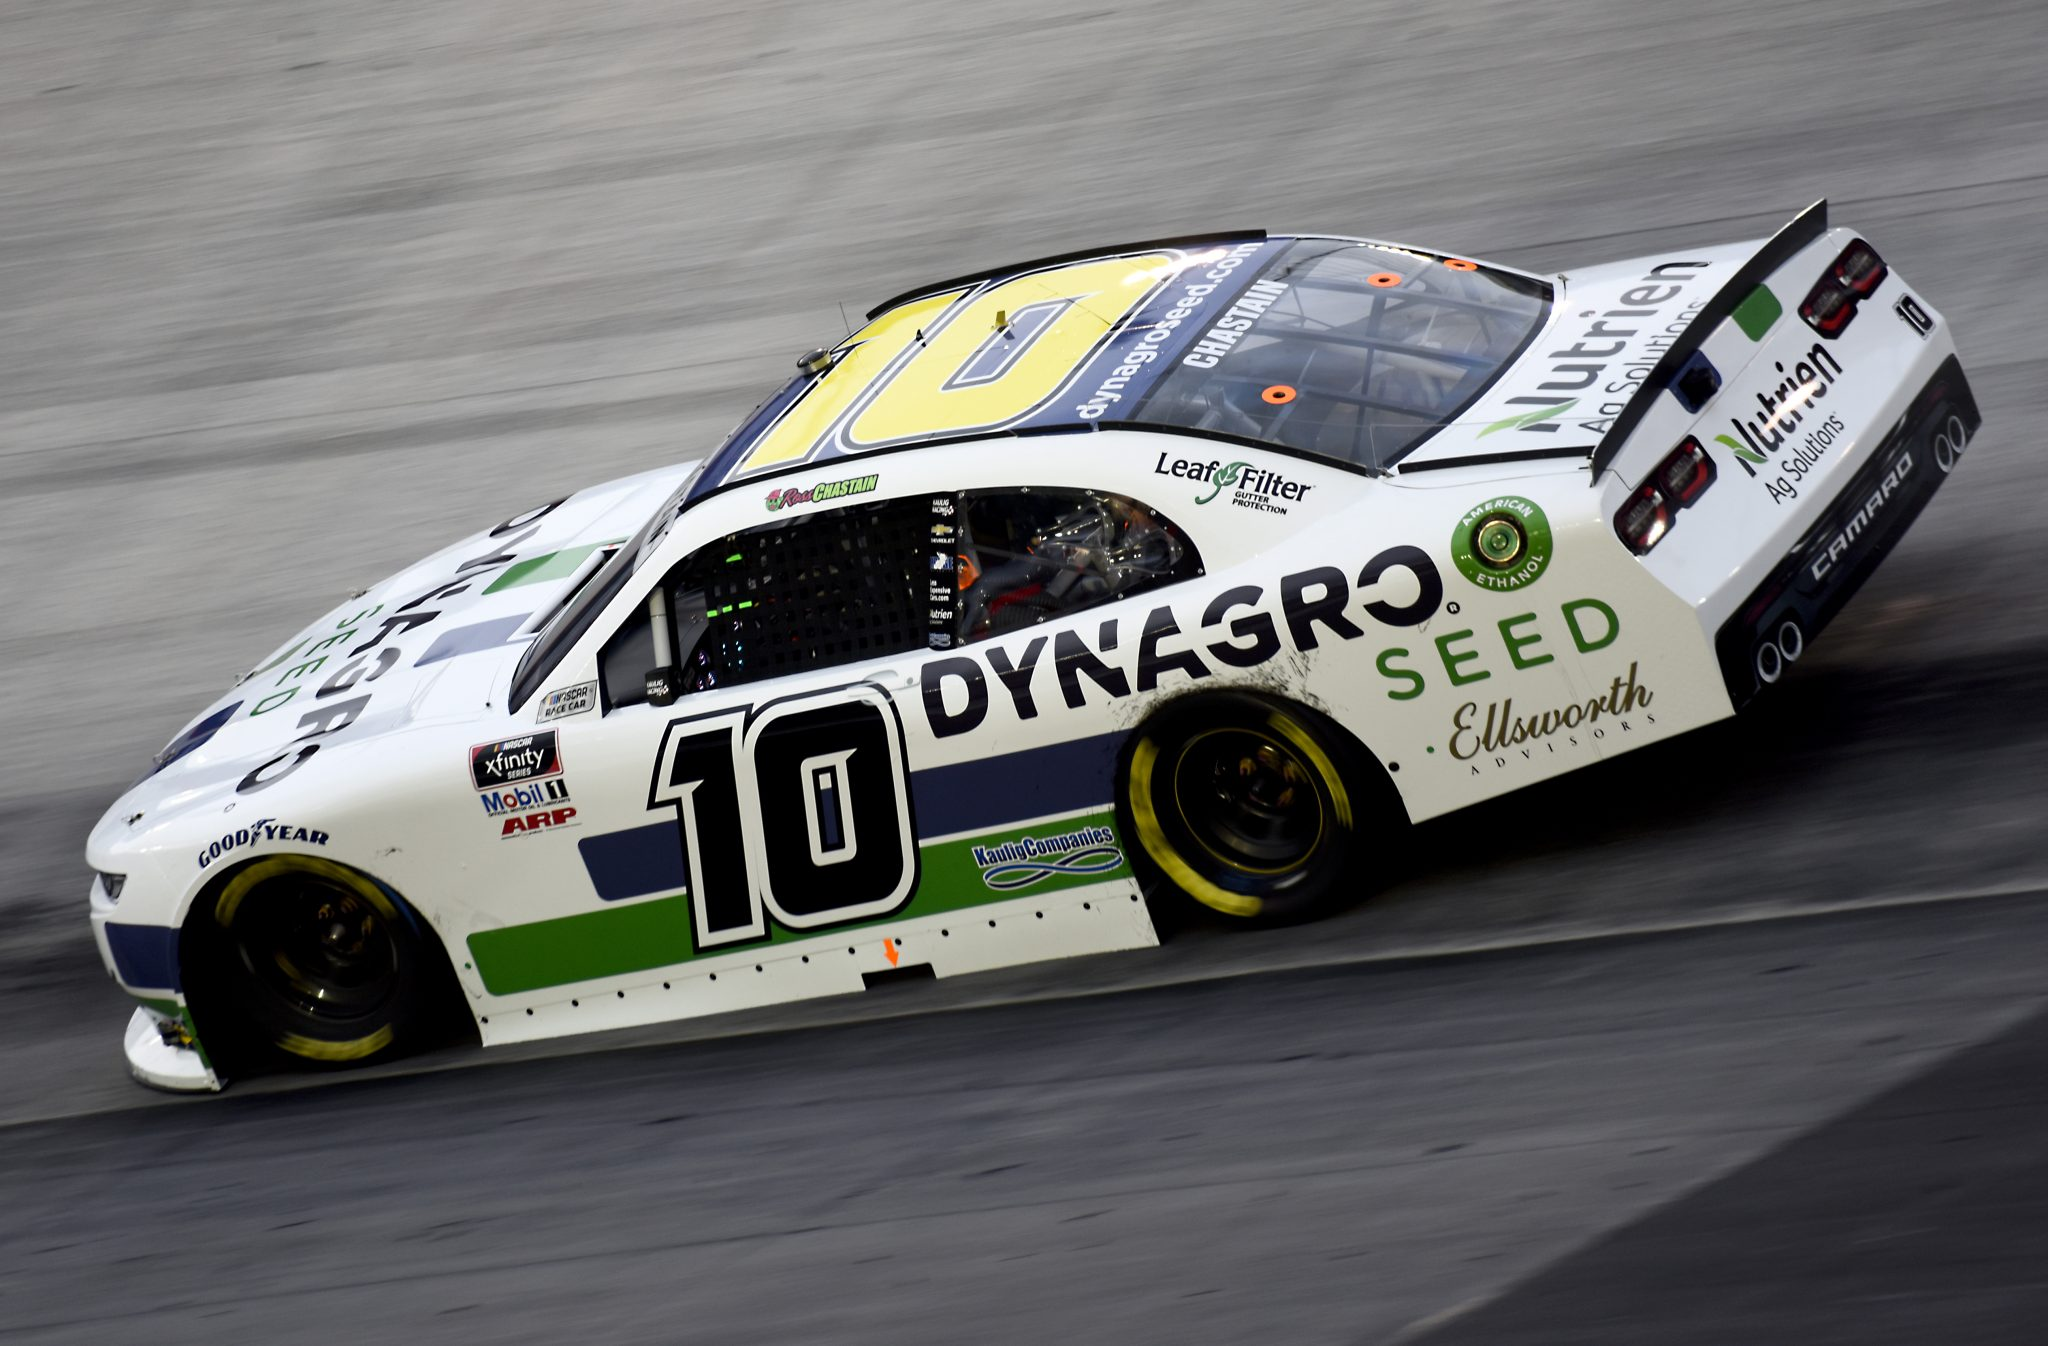 BRISTOL, TENNESSEE - SEPTEMBER 18: Ross Chastain, driver of the #10 Dyna-Gro Seed Chevrolet, drives during the NASCAR Xfinity Series Food City 300 at Bristol Motor Speedway on September 18, 2020 in Bristol, Tennessee. (Photo by Jared C. Tilton/Getty Images) | Getty Images